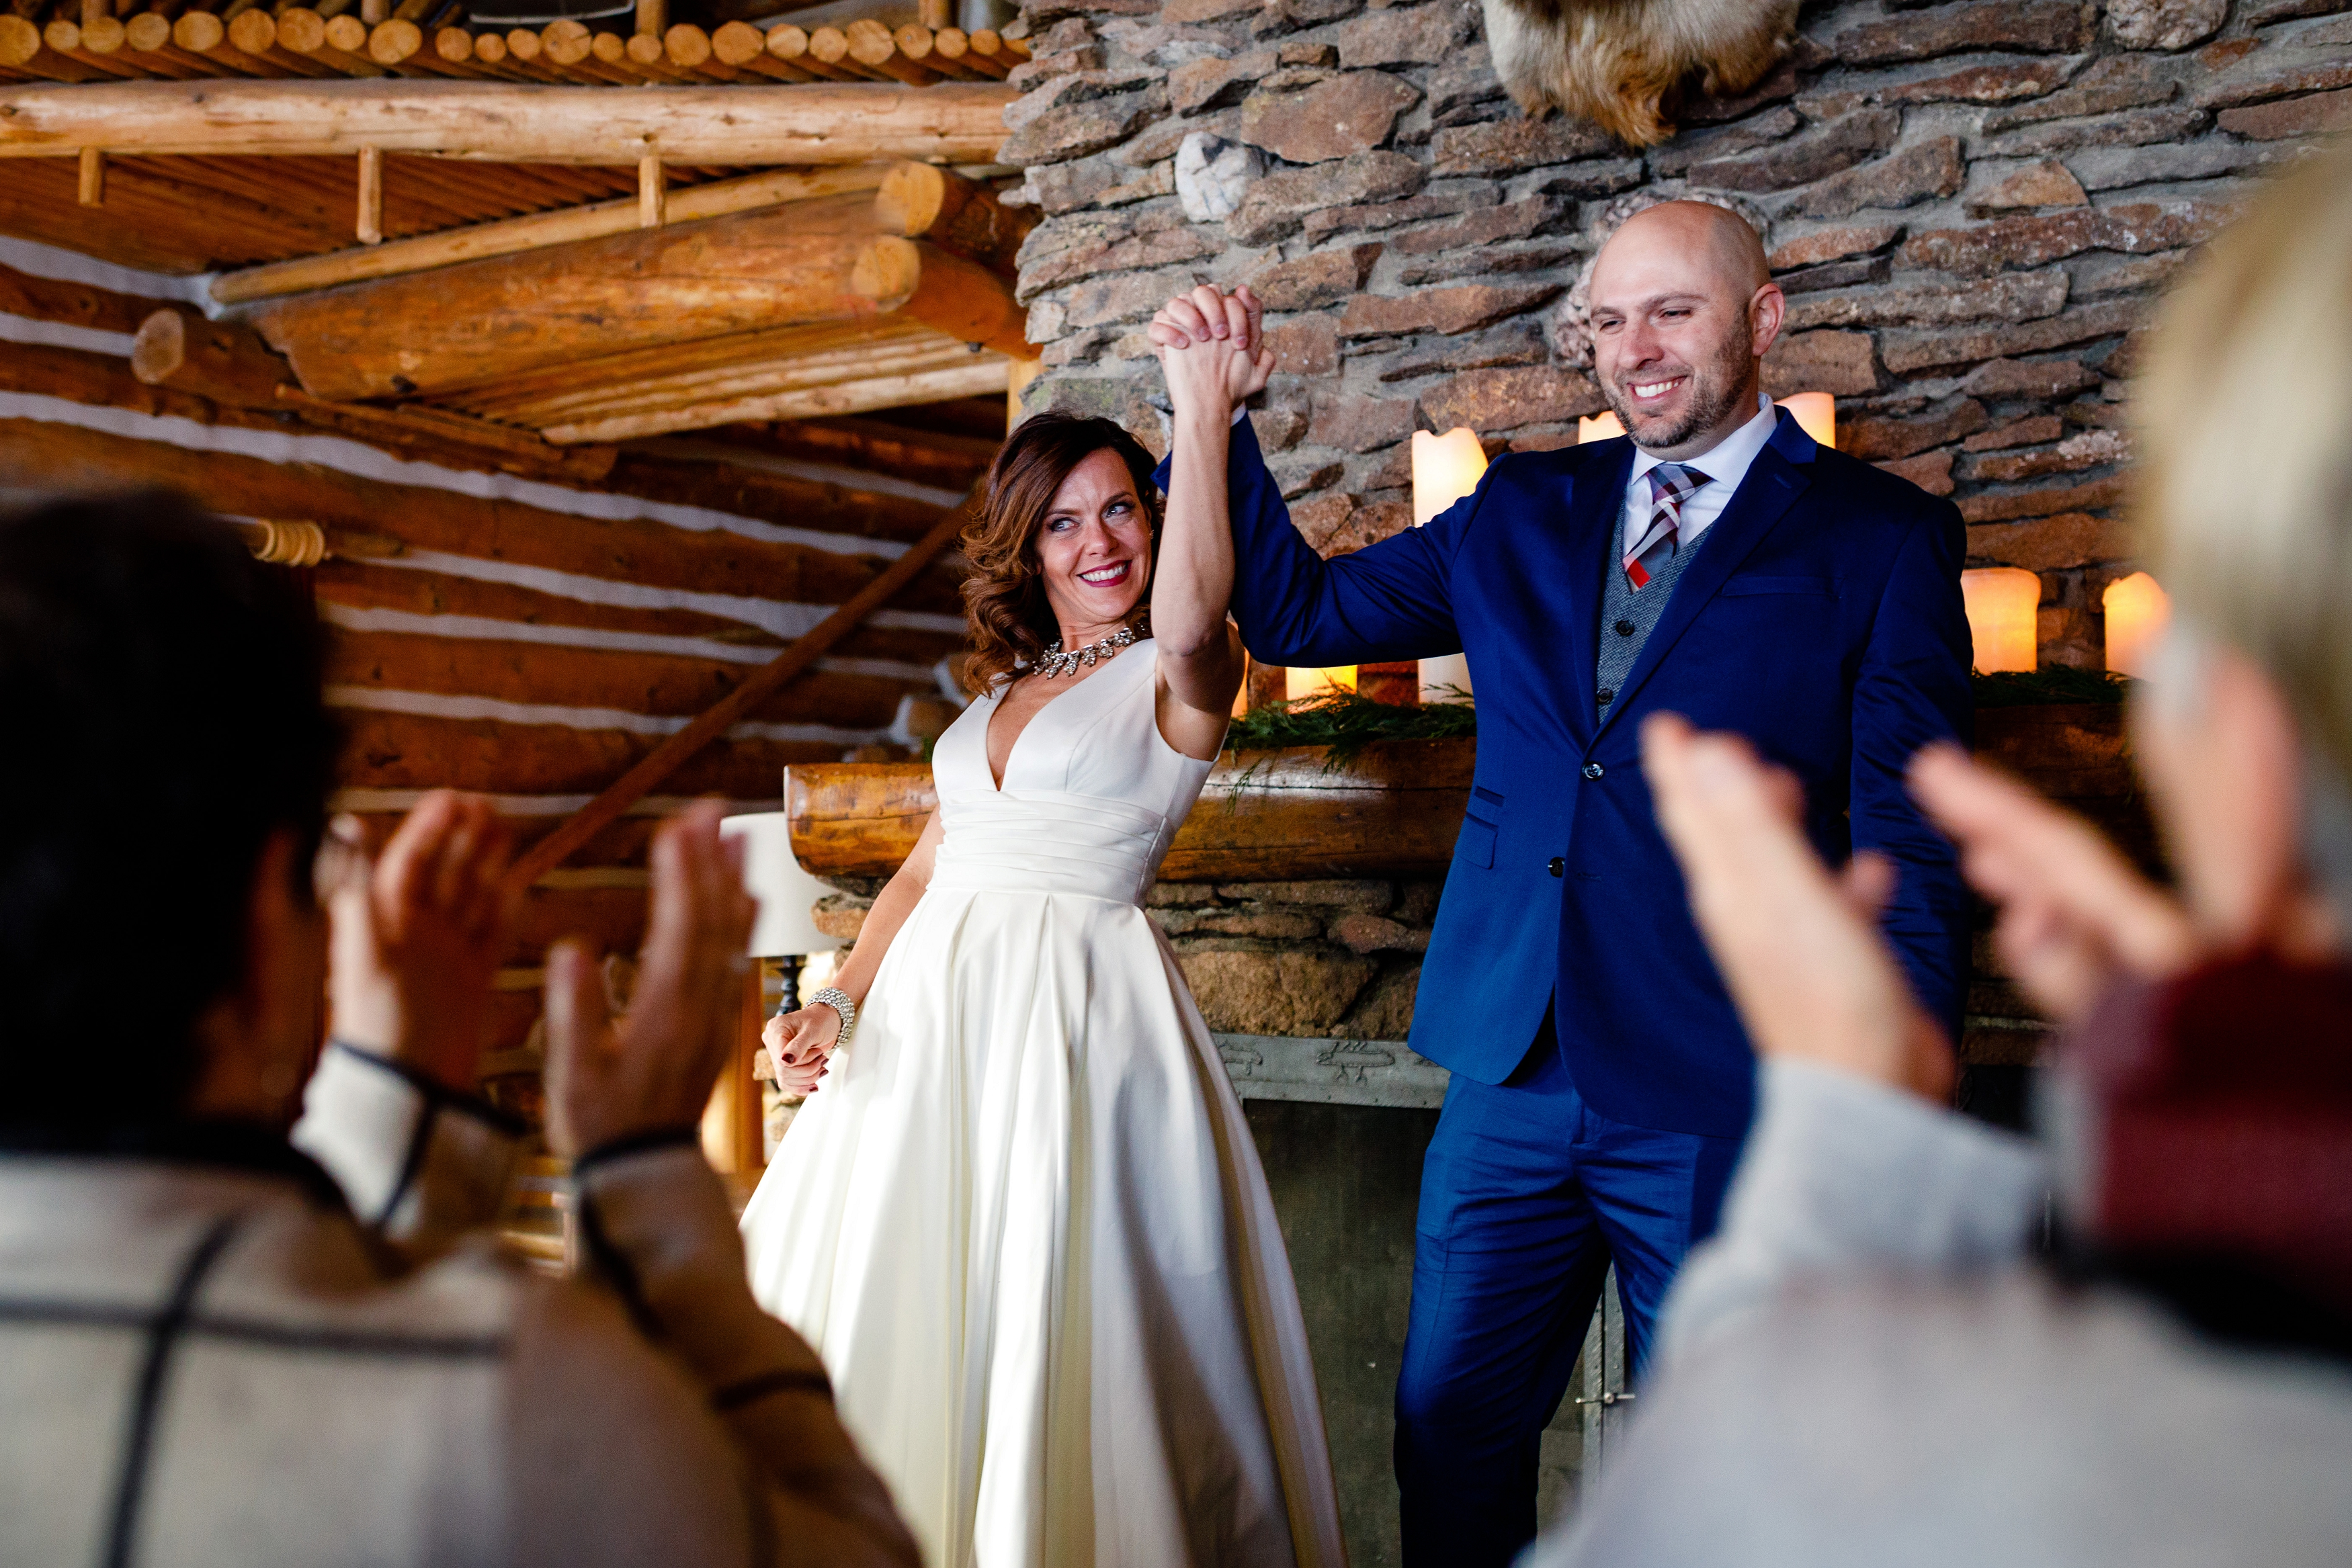 The moment after their first kiss as husband & wife in the Keystone Ranch Lodge.